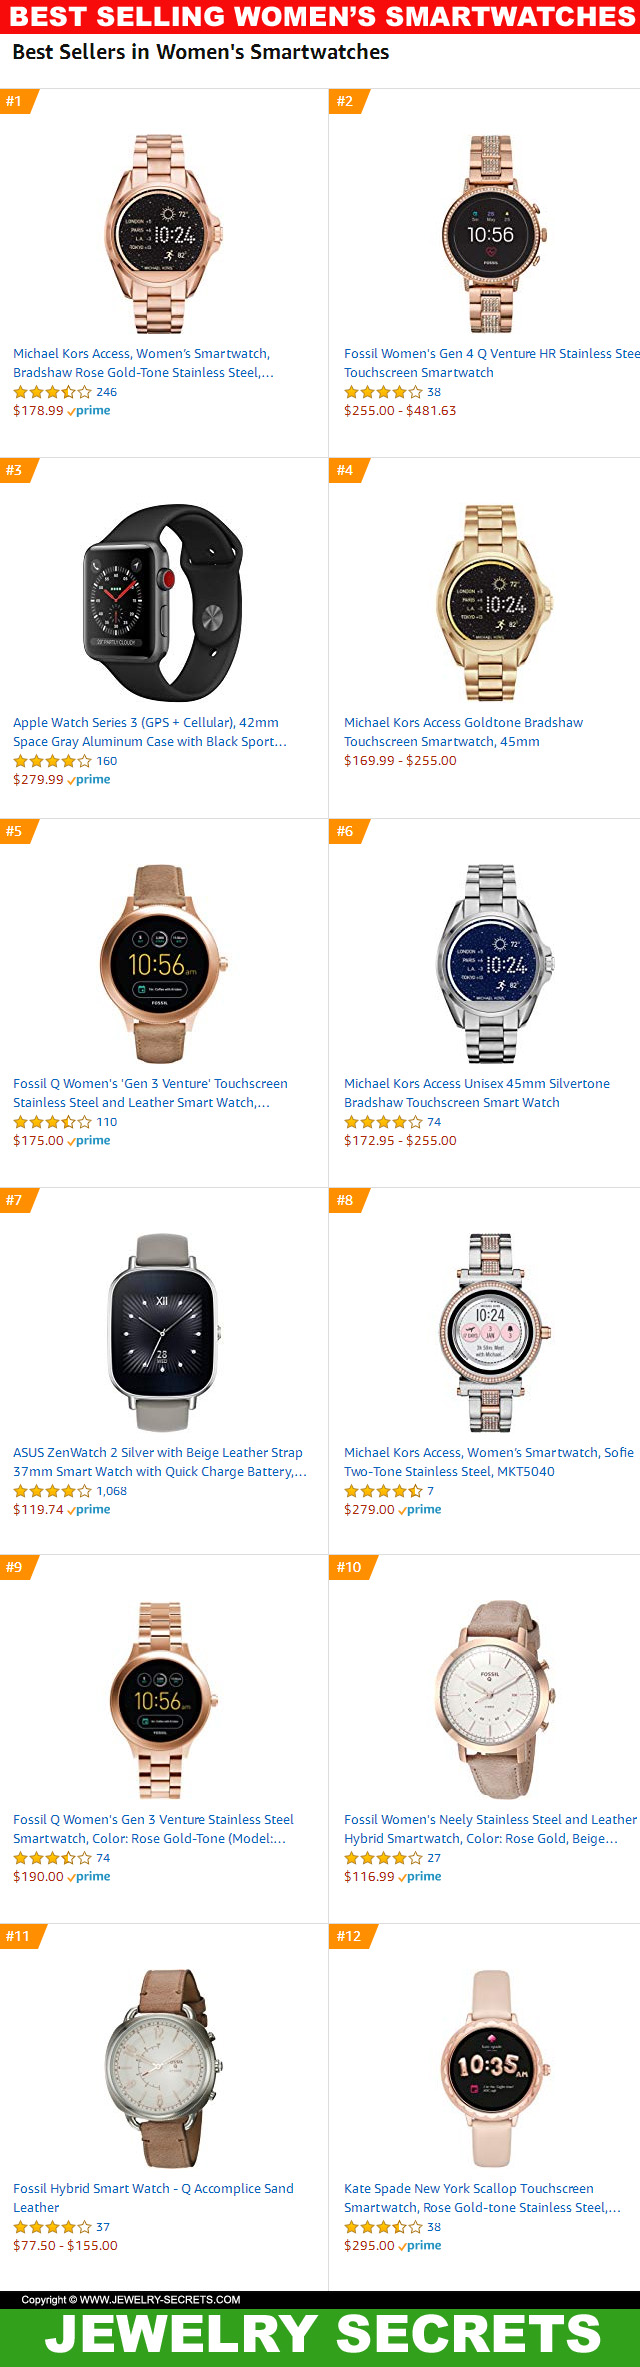 Top 12 Best Selling Womens Smartwatches